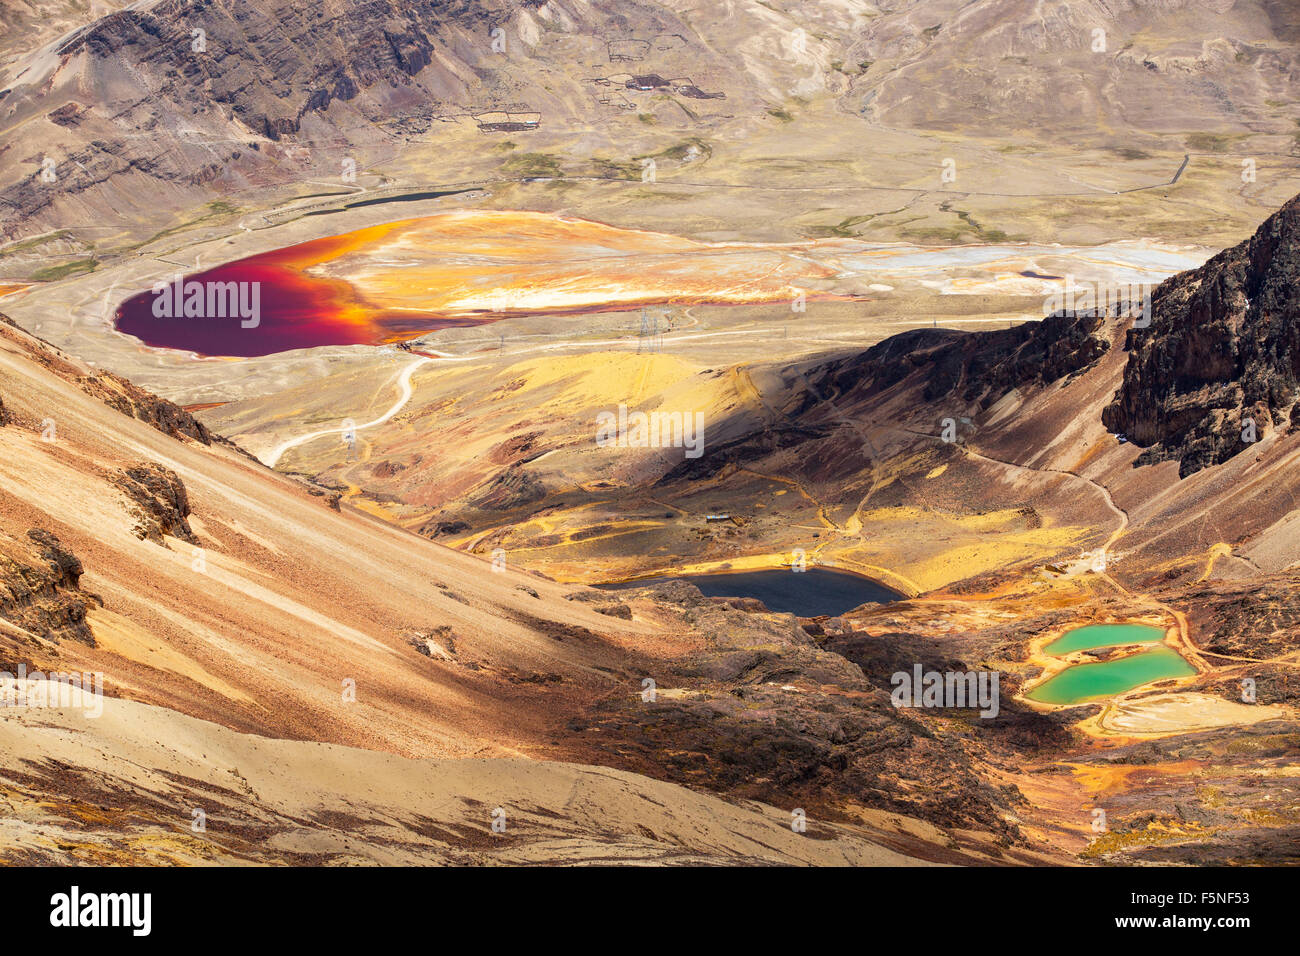 Colourful lakes below the peak of Chacaltaya in the Bolivian Andes, with a lake discoloured by mine effluent. Stock Photo